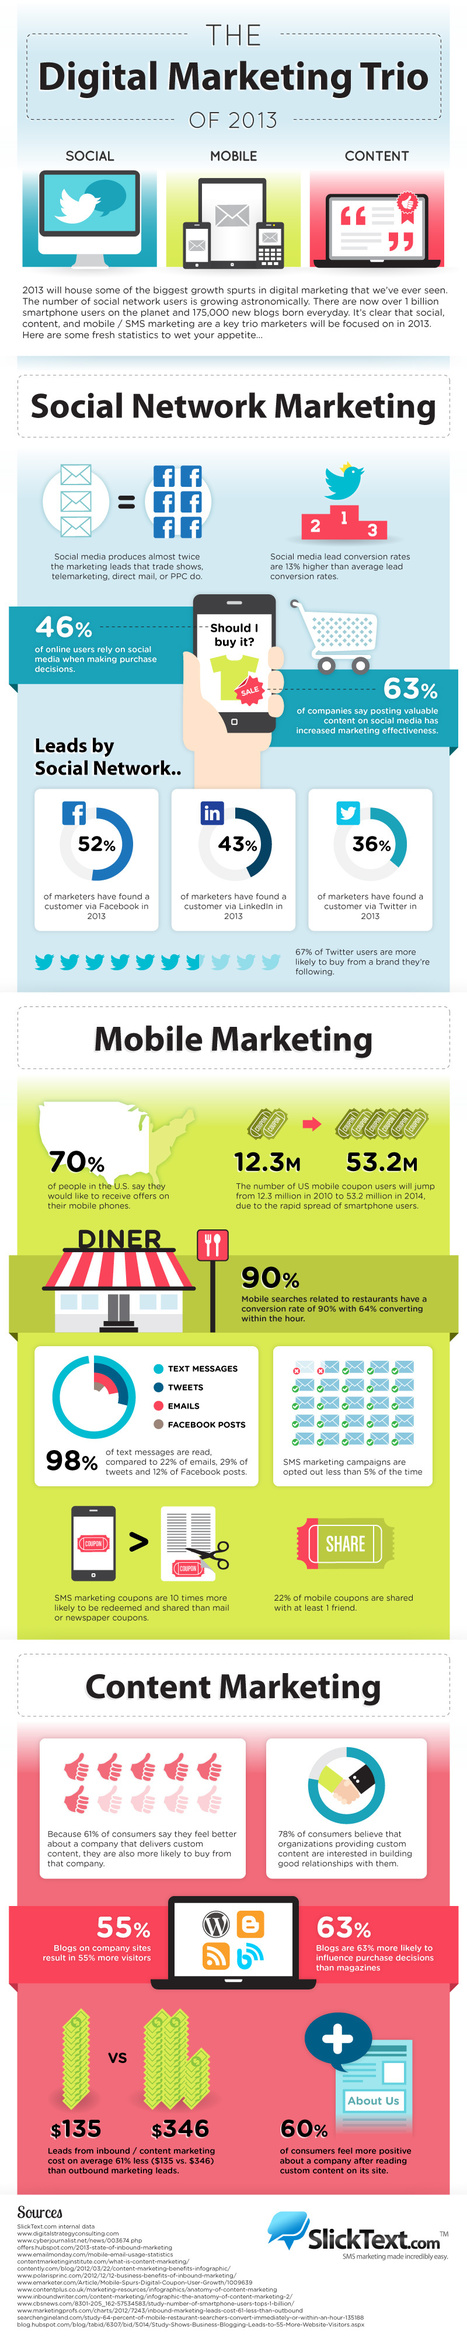 The Digital Marketing Trio Of 2013 [Infographic] | Digital & Social Media Marketing | Scoop.it